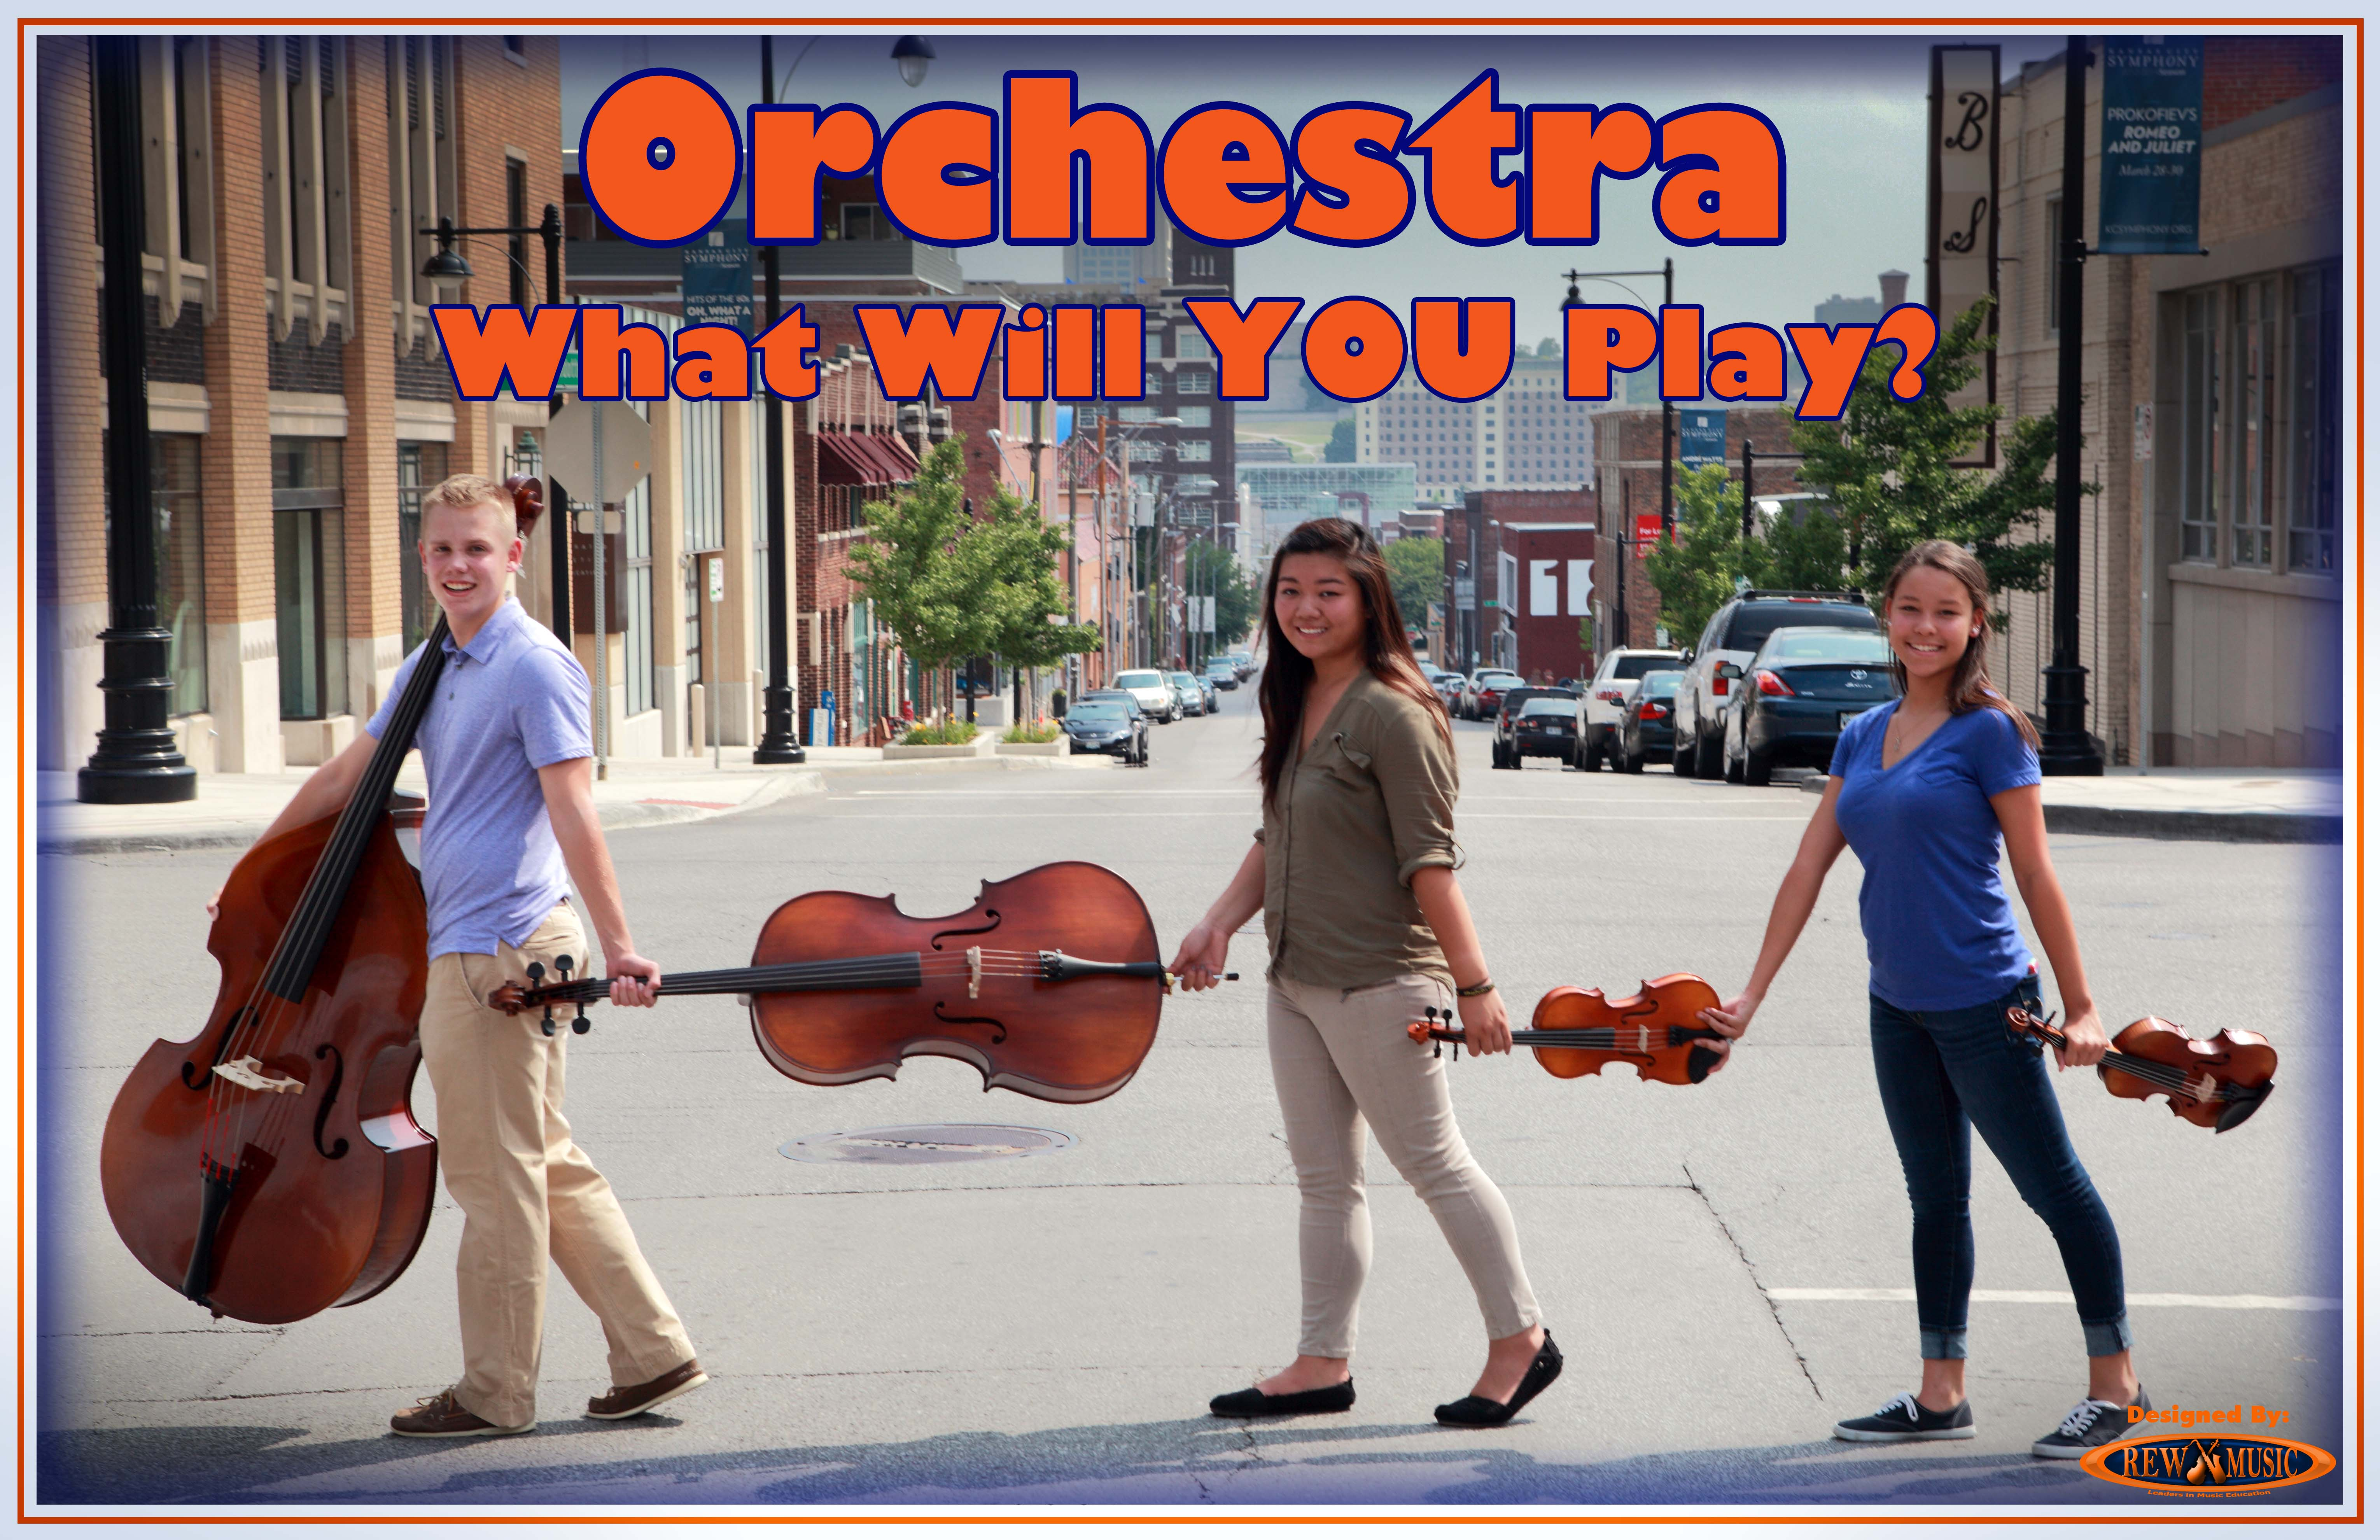 Join the School Orchestra Strings What Will You Play Group Abbey Road Style